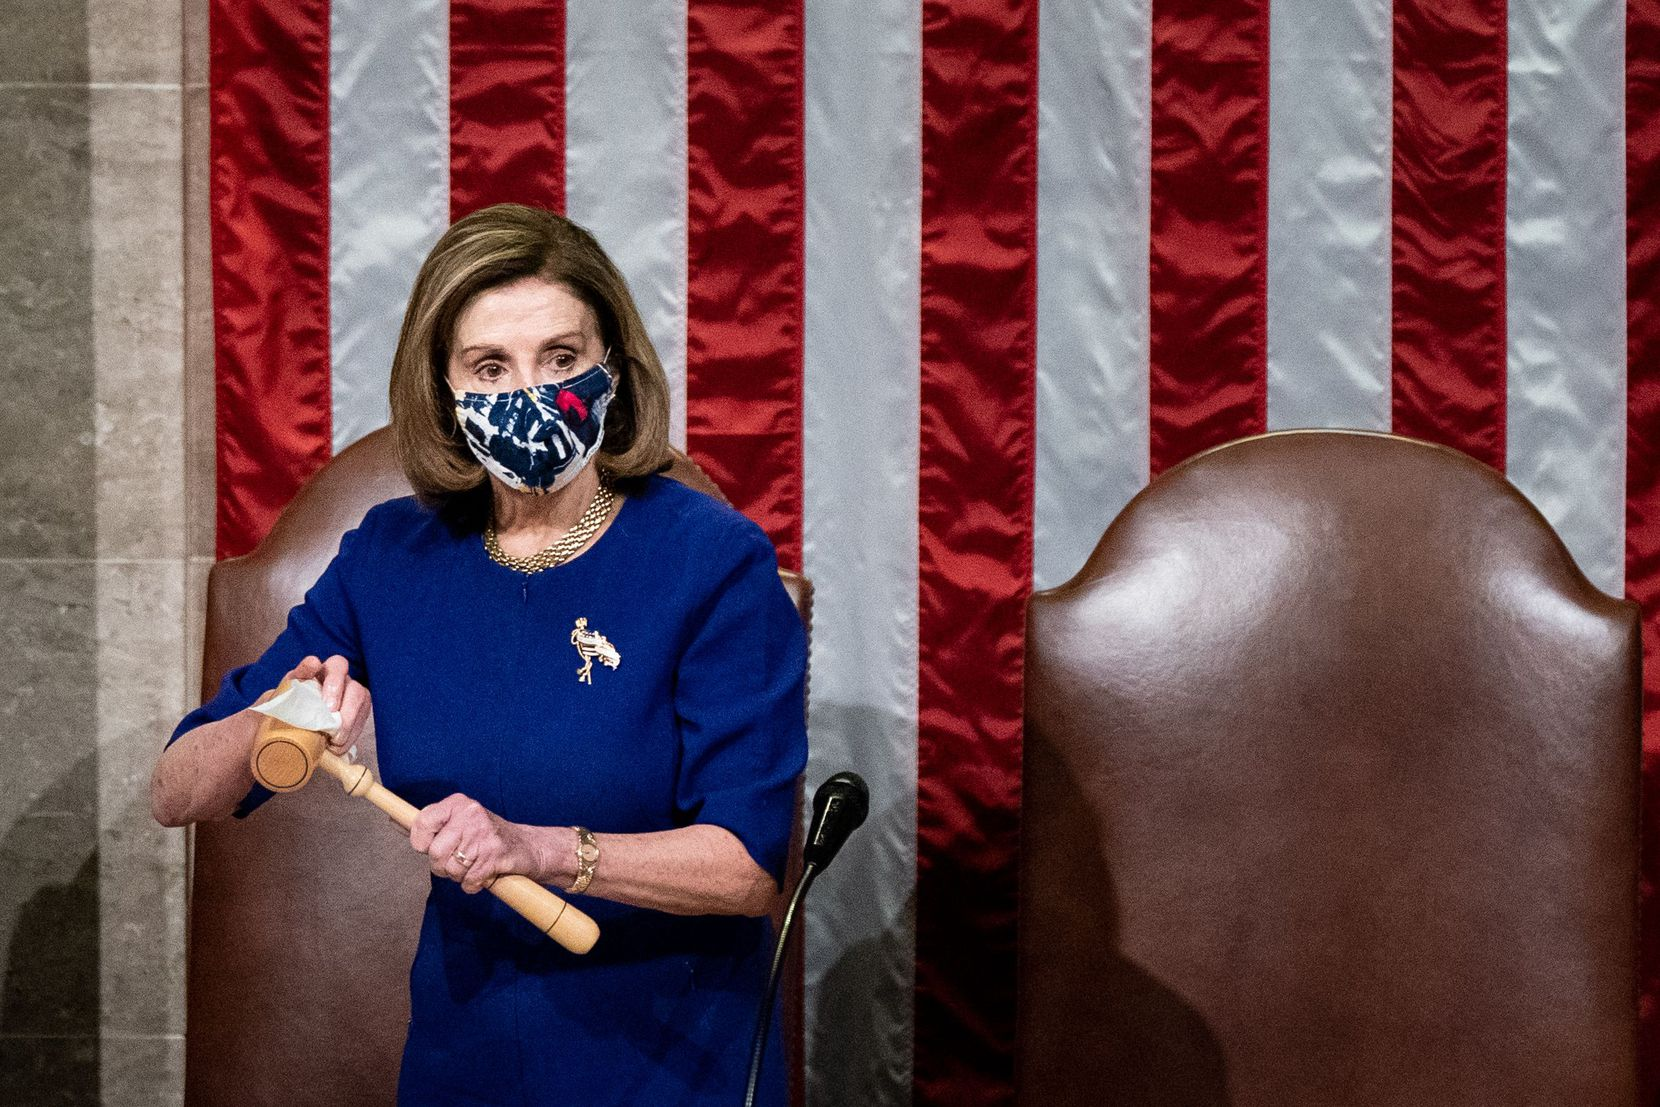 House Speaker Nancy Pelosi sanitizes the gavel after Vice President Mike Pence walked off the dais during a joint session of Congress to count the electoral votes for President at the US Capitol in Washington, DC, January 6, 2021. - Congress is meeting to certify Joe Biden as the winner of the 2020 presidential election, with scores of Republican lawmakers preparing to challenge the tally in a number of states during what is normally a largely ceremonial event.